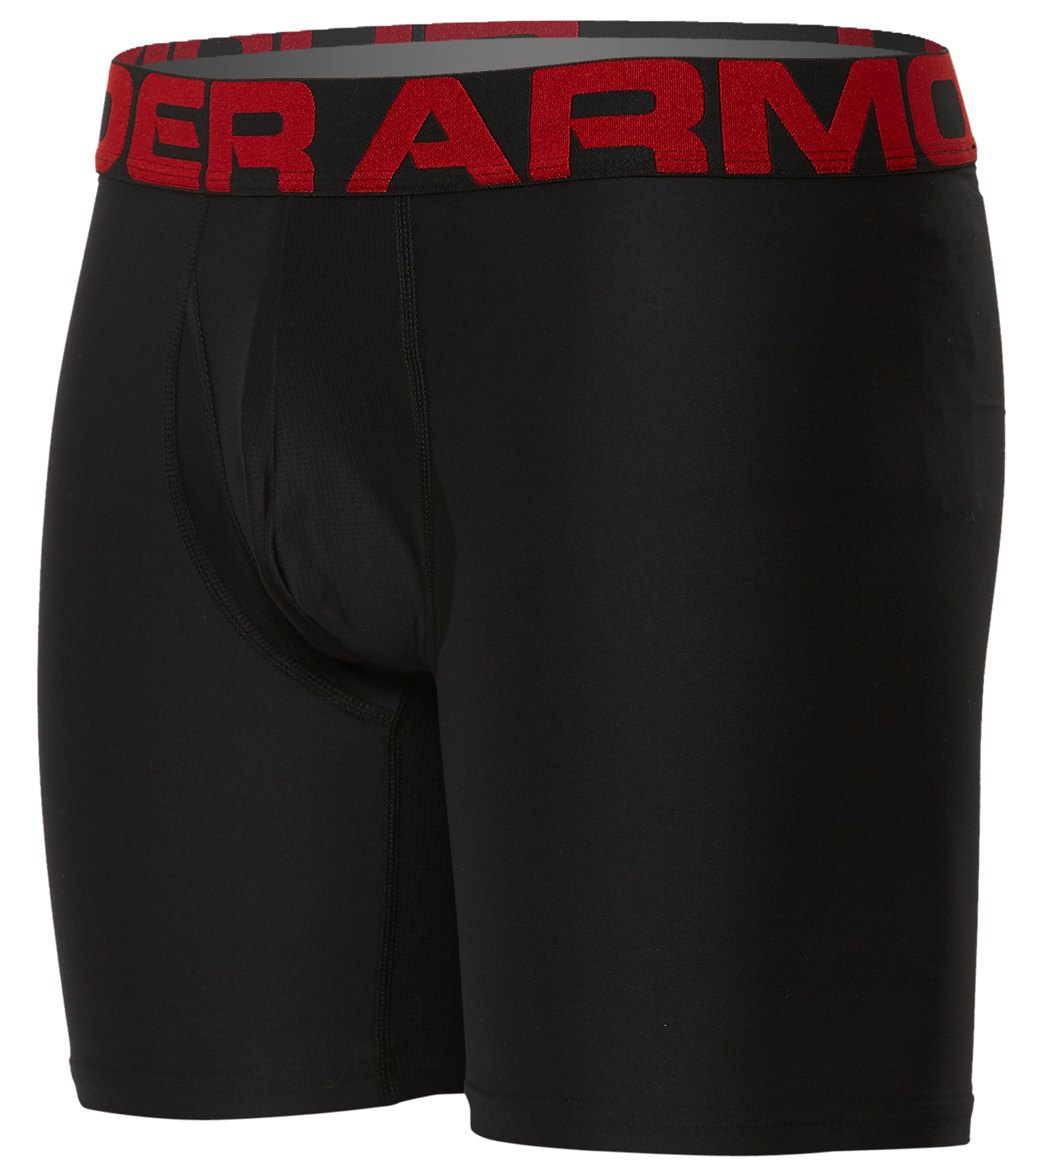 For ultimate comfort try the Under Armour Men\\\'s UA Tech 6 Boxer 2-Pack. FeaturesLightweight, smooth HeatGearfabric & articulated mesh fly panel 4-way stretch construction moves better in every direction Material wicks sweat & dries really fast Anti-odor technology prevents the growth of odor-causing microbes Performance waistband designed for a comfortable, stay-put fit Working flyDetailsFabric: 90% Polyester, 10% ElastaneFit: SnugInseam: 6\\\